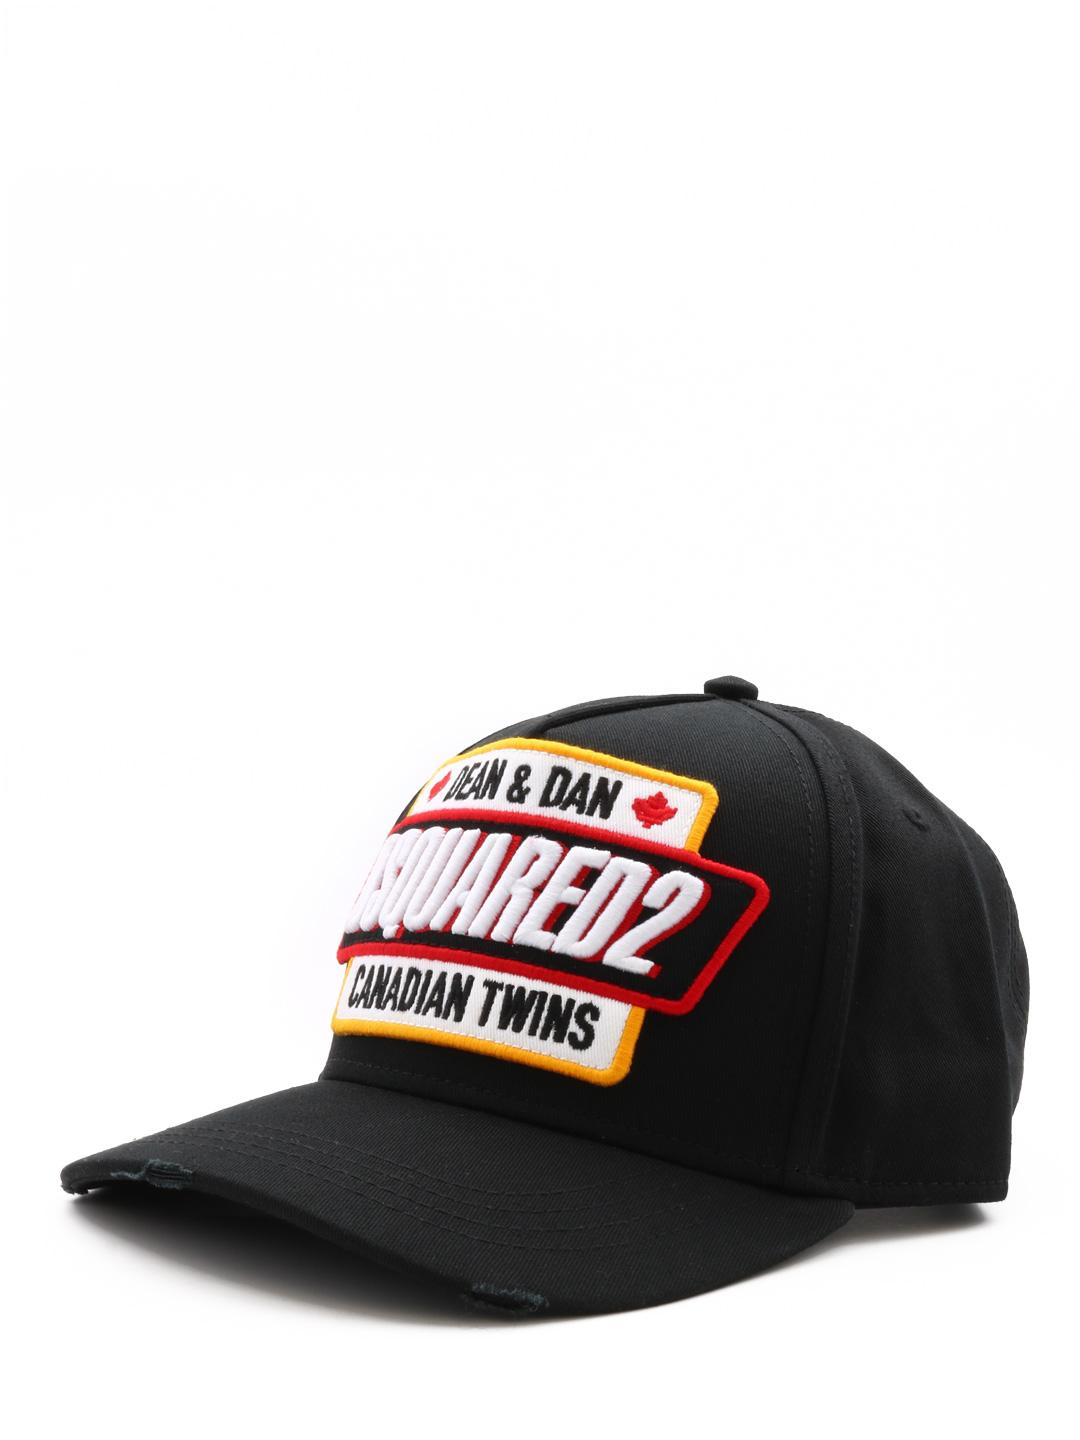 8a426ea2b78e7 Lyst - DSquared² Canadian Twins Hat Black in Black for Men